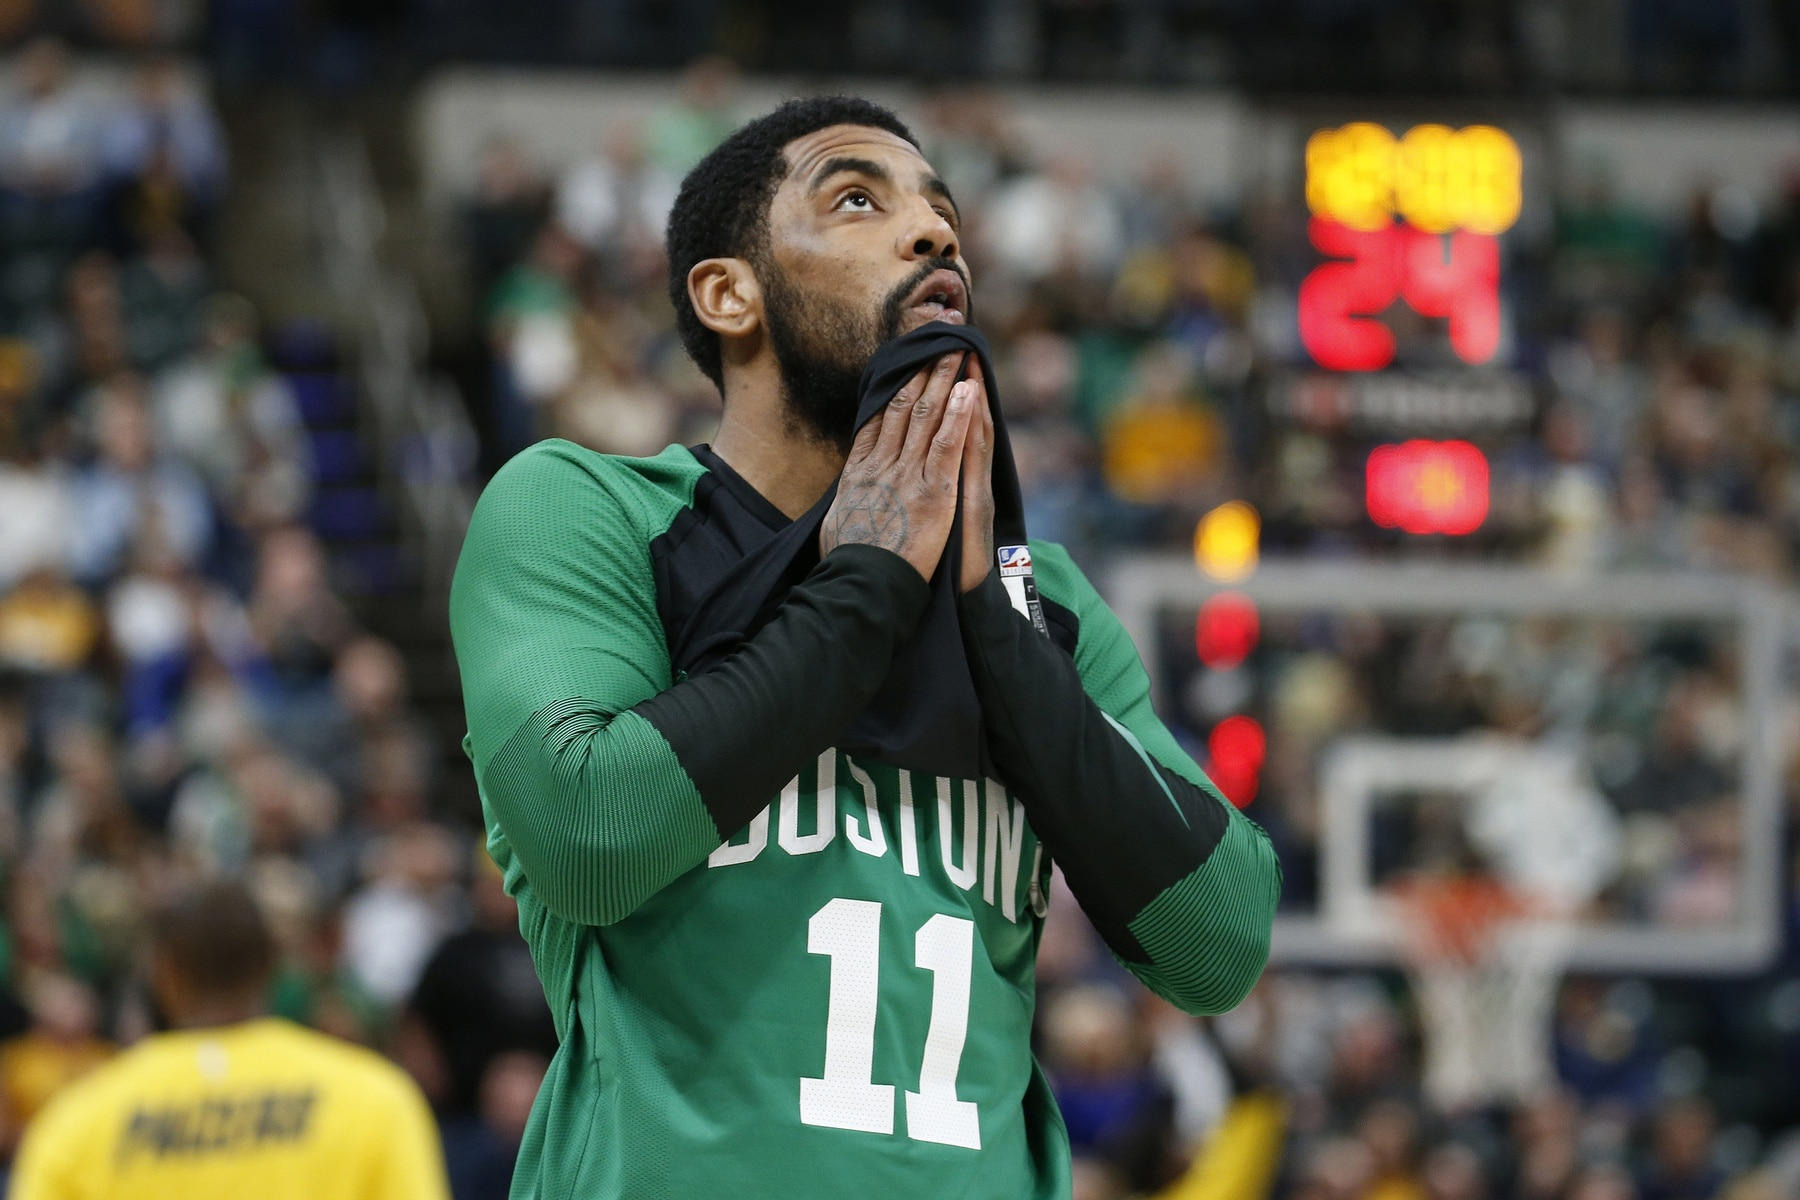 new arrival 9b978 bc430 Kyrie Irving seems to question his own professionalism amid Celtics  drama